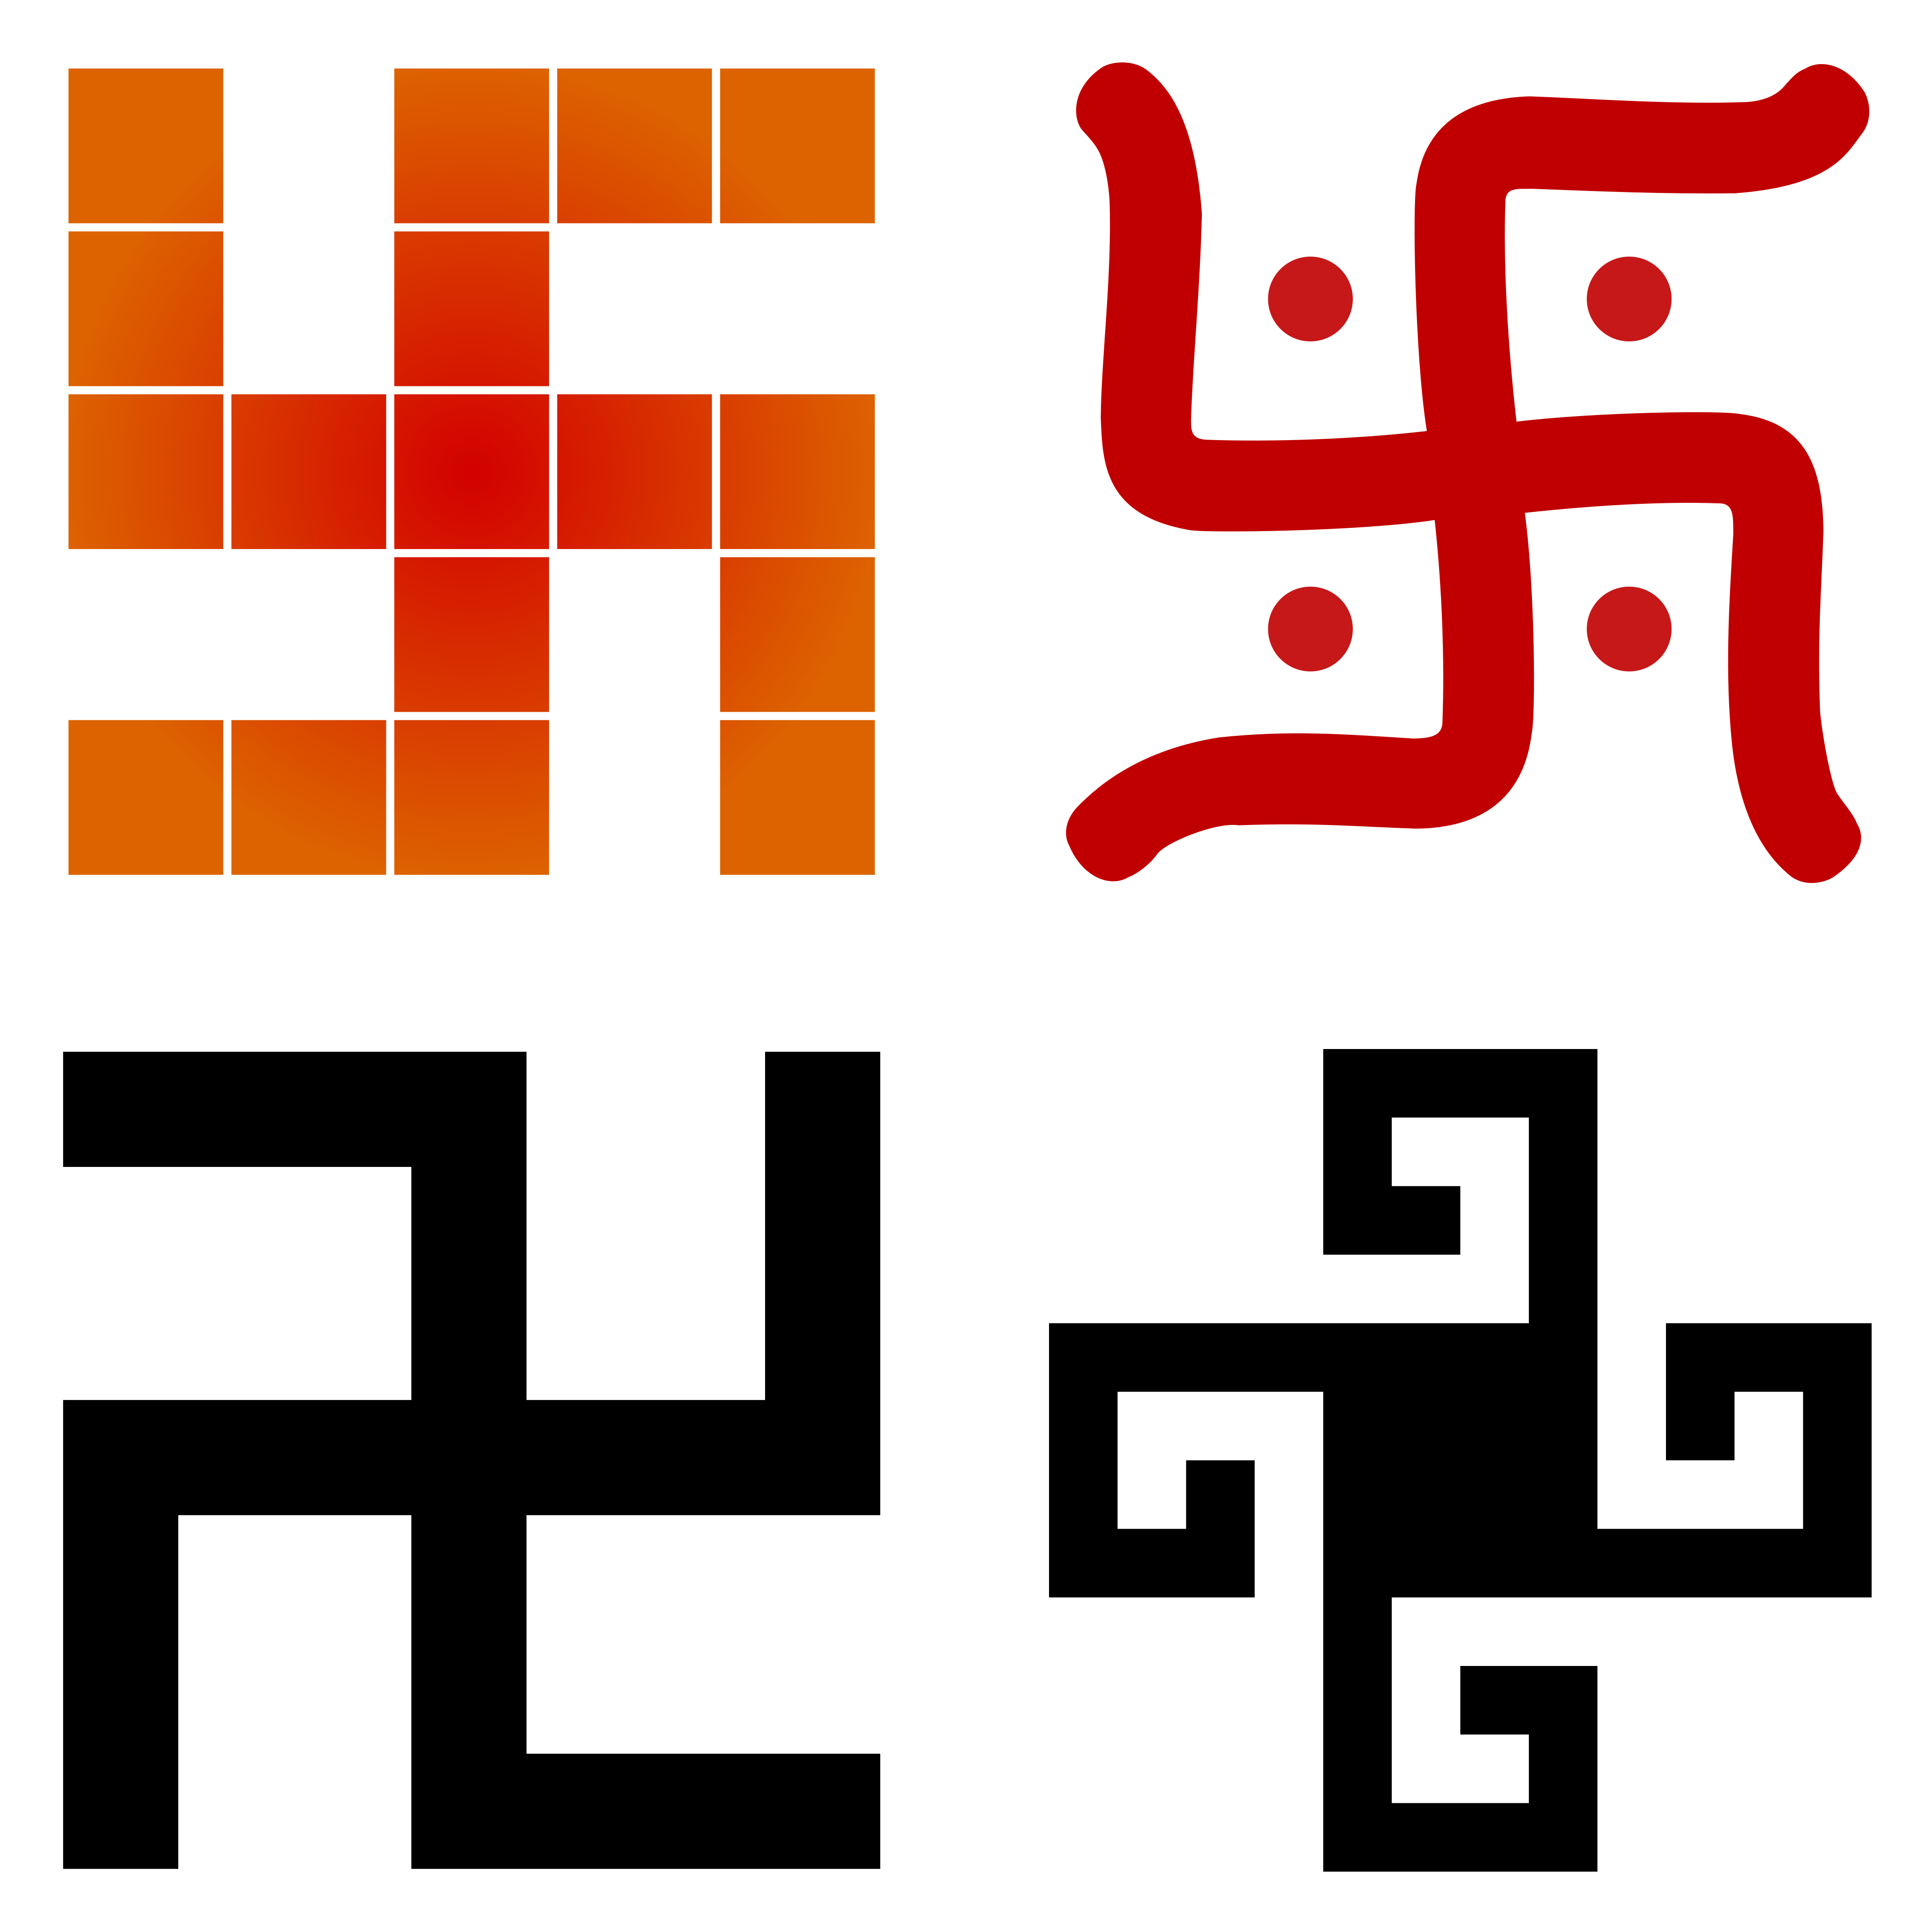 Swastika wikipedia a swastika is a symbol found in many cultures with different meanings drawn in different styles buycottarizona